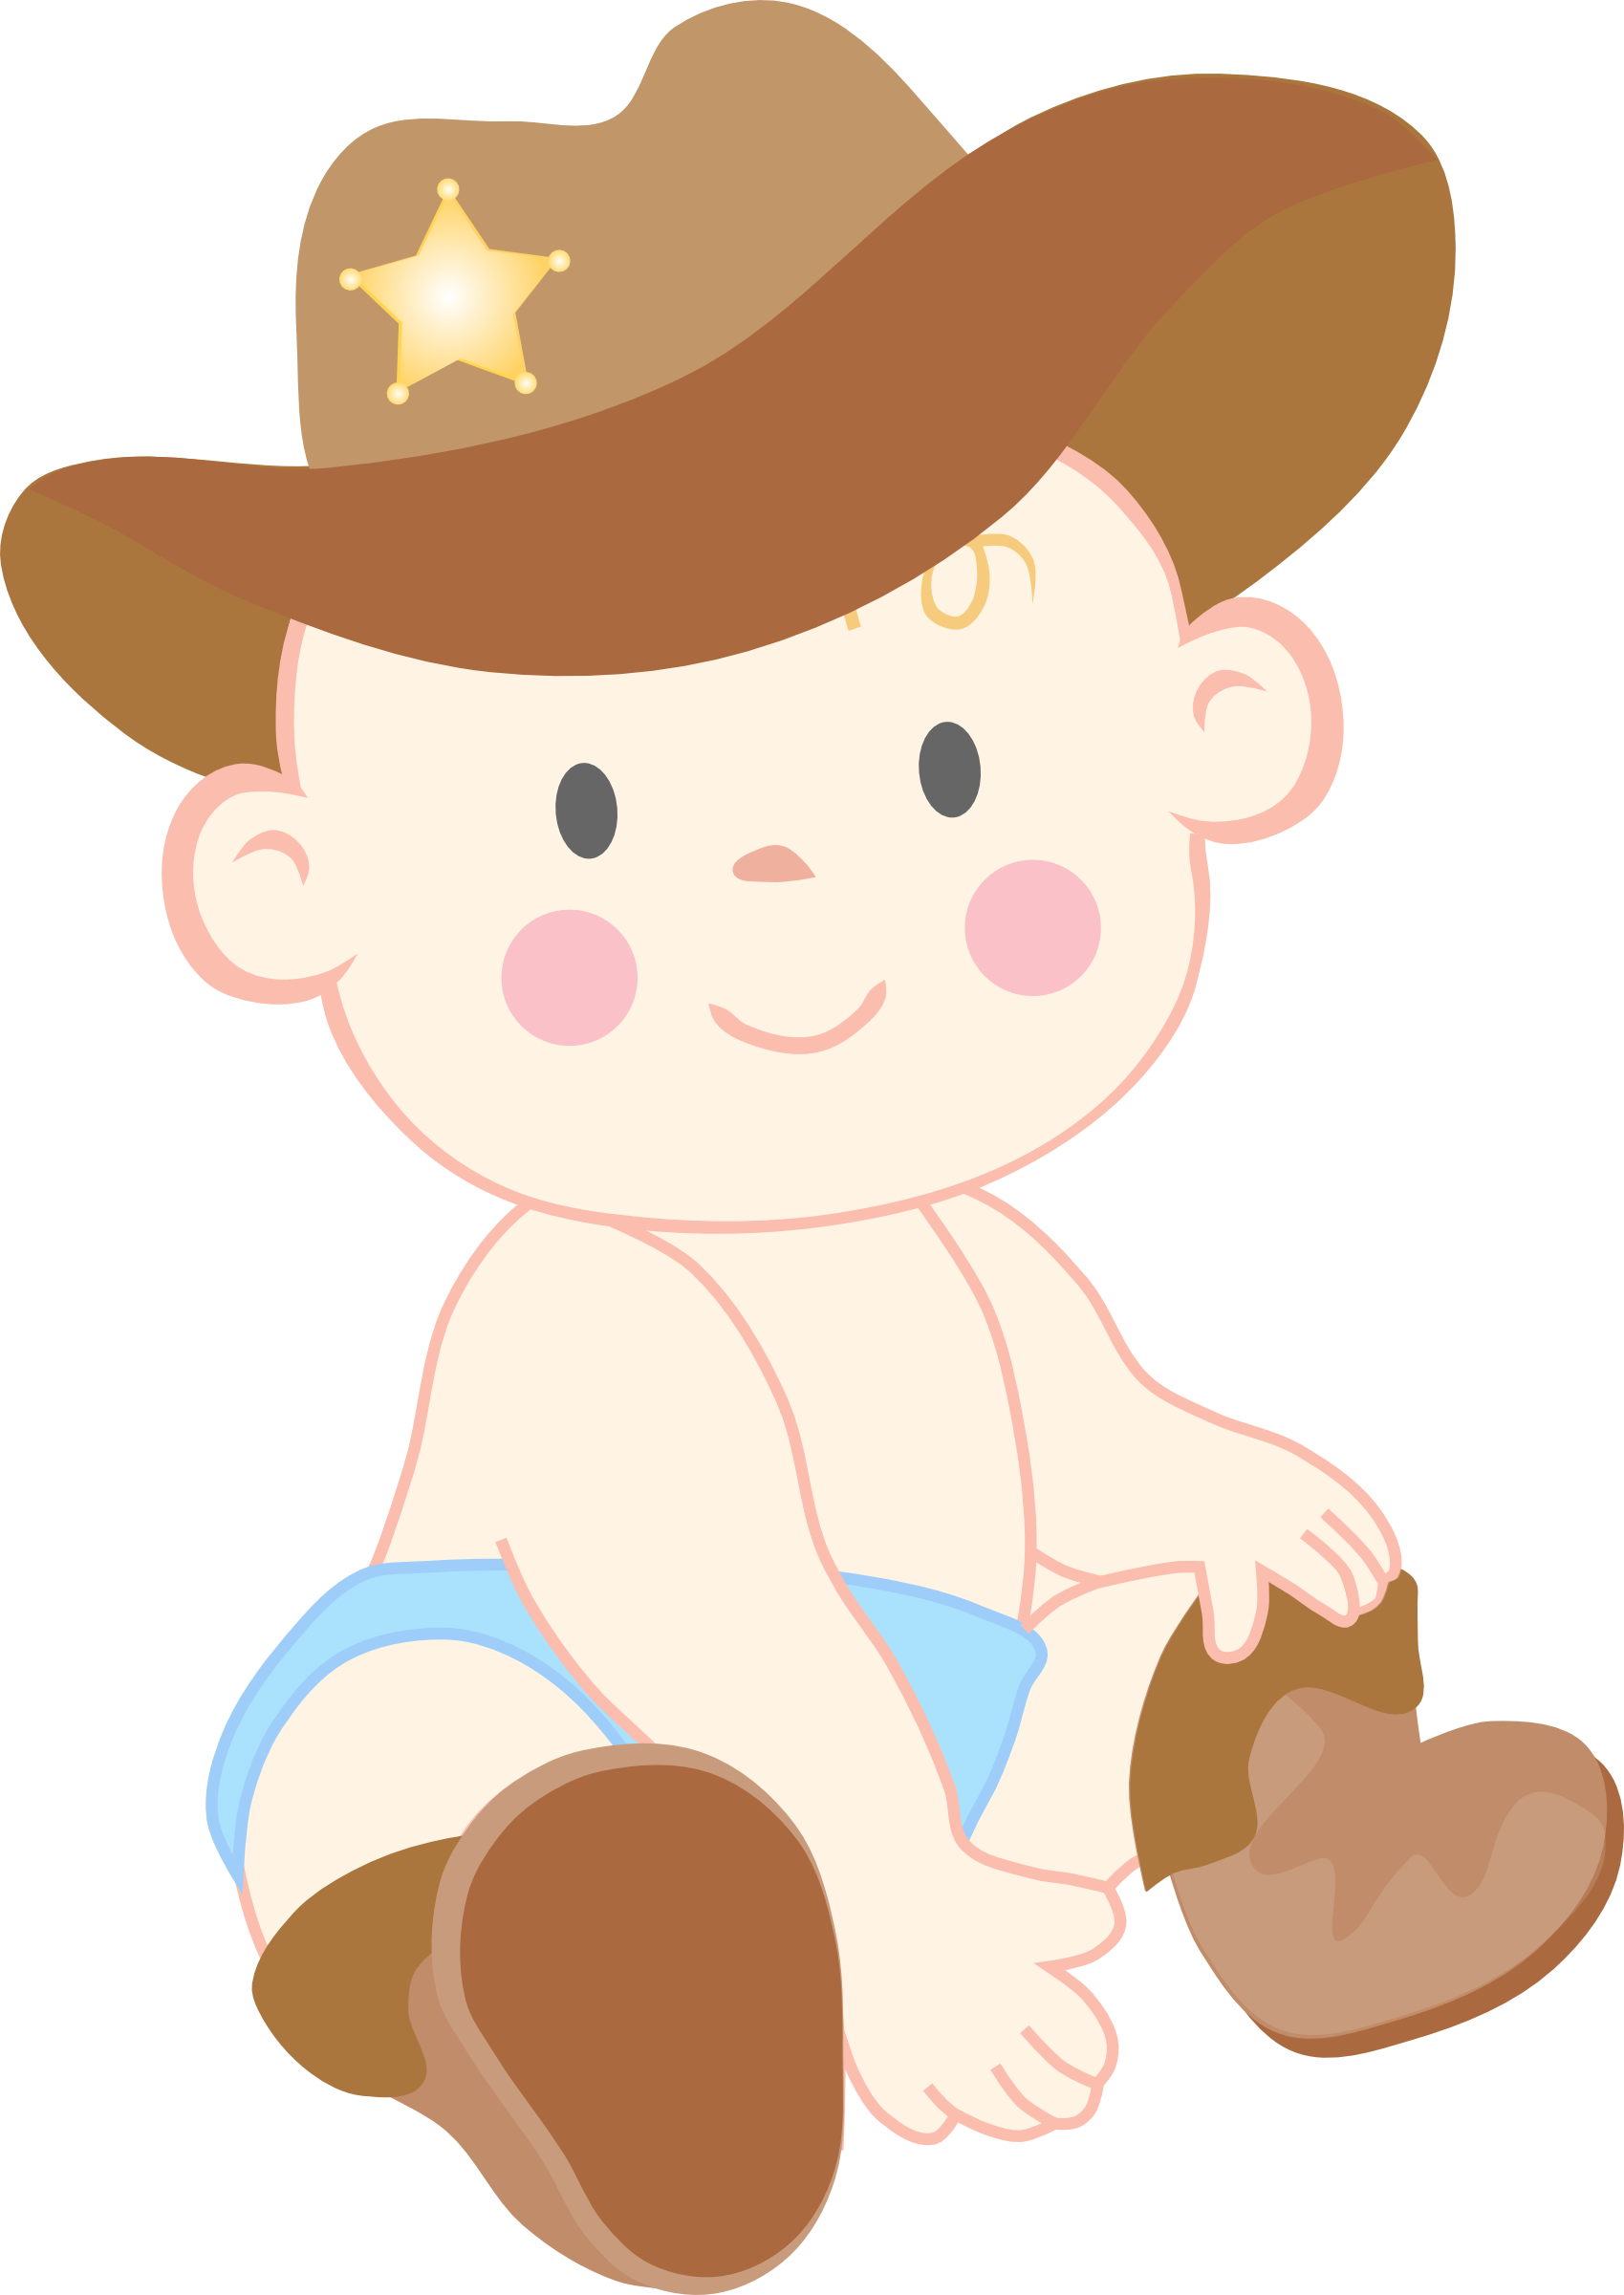 Baby shower clip art clipart svg black and white library Clip Art Cowboy Baby Shower Clipart svg black and white library